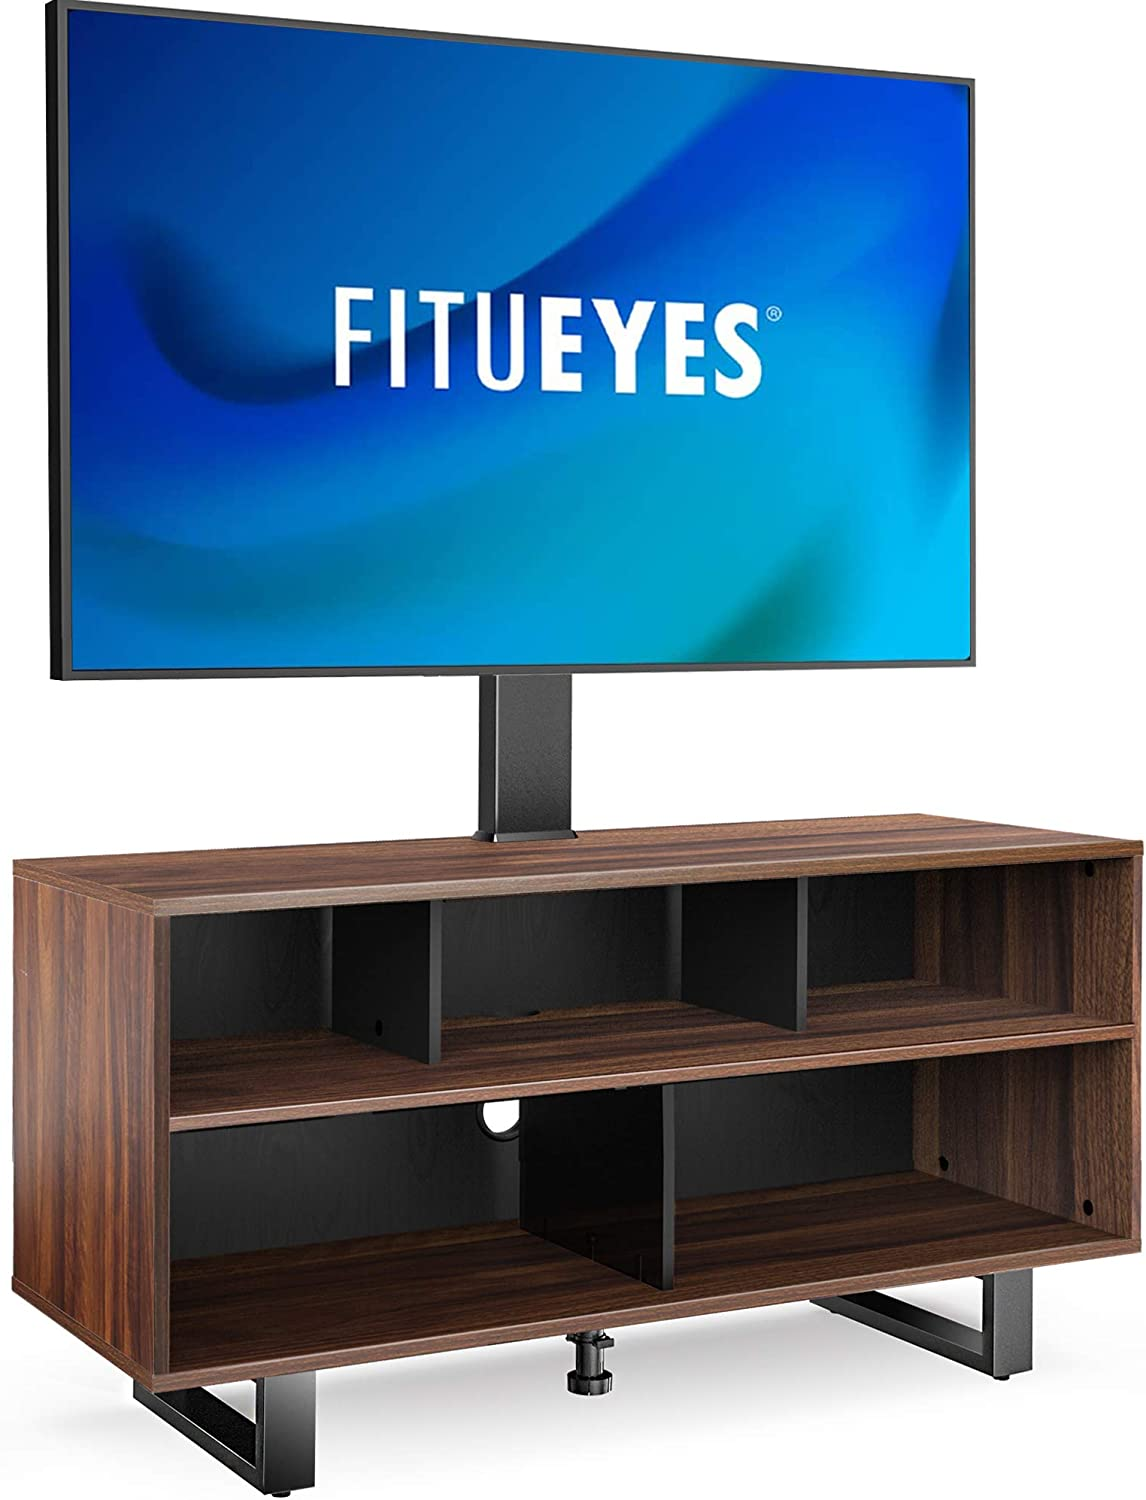 FITUEYES Swivel Floor TV Stand for 32-70 Inch TVS Universal Corner TV Stands with Storage for Media Console Holds Up to 110 Pounds 2 Levels Height Adjustment Television Stands VESA 400x600mm